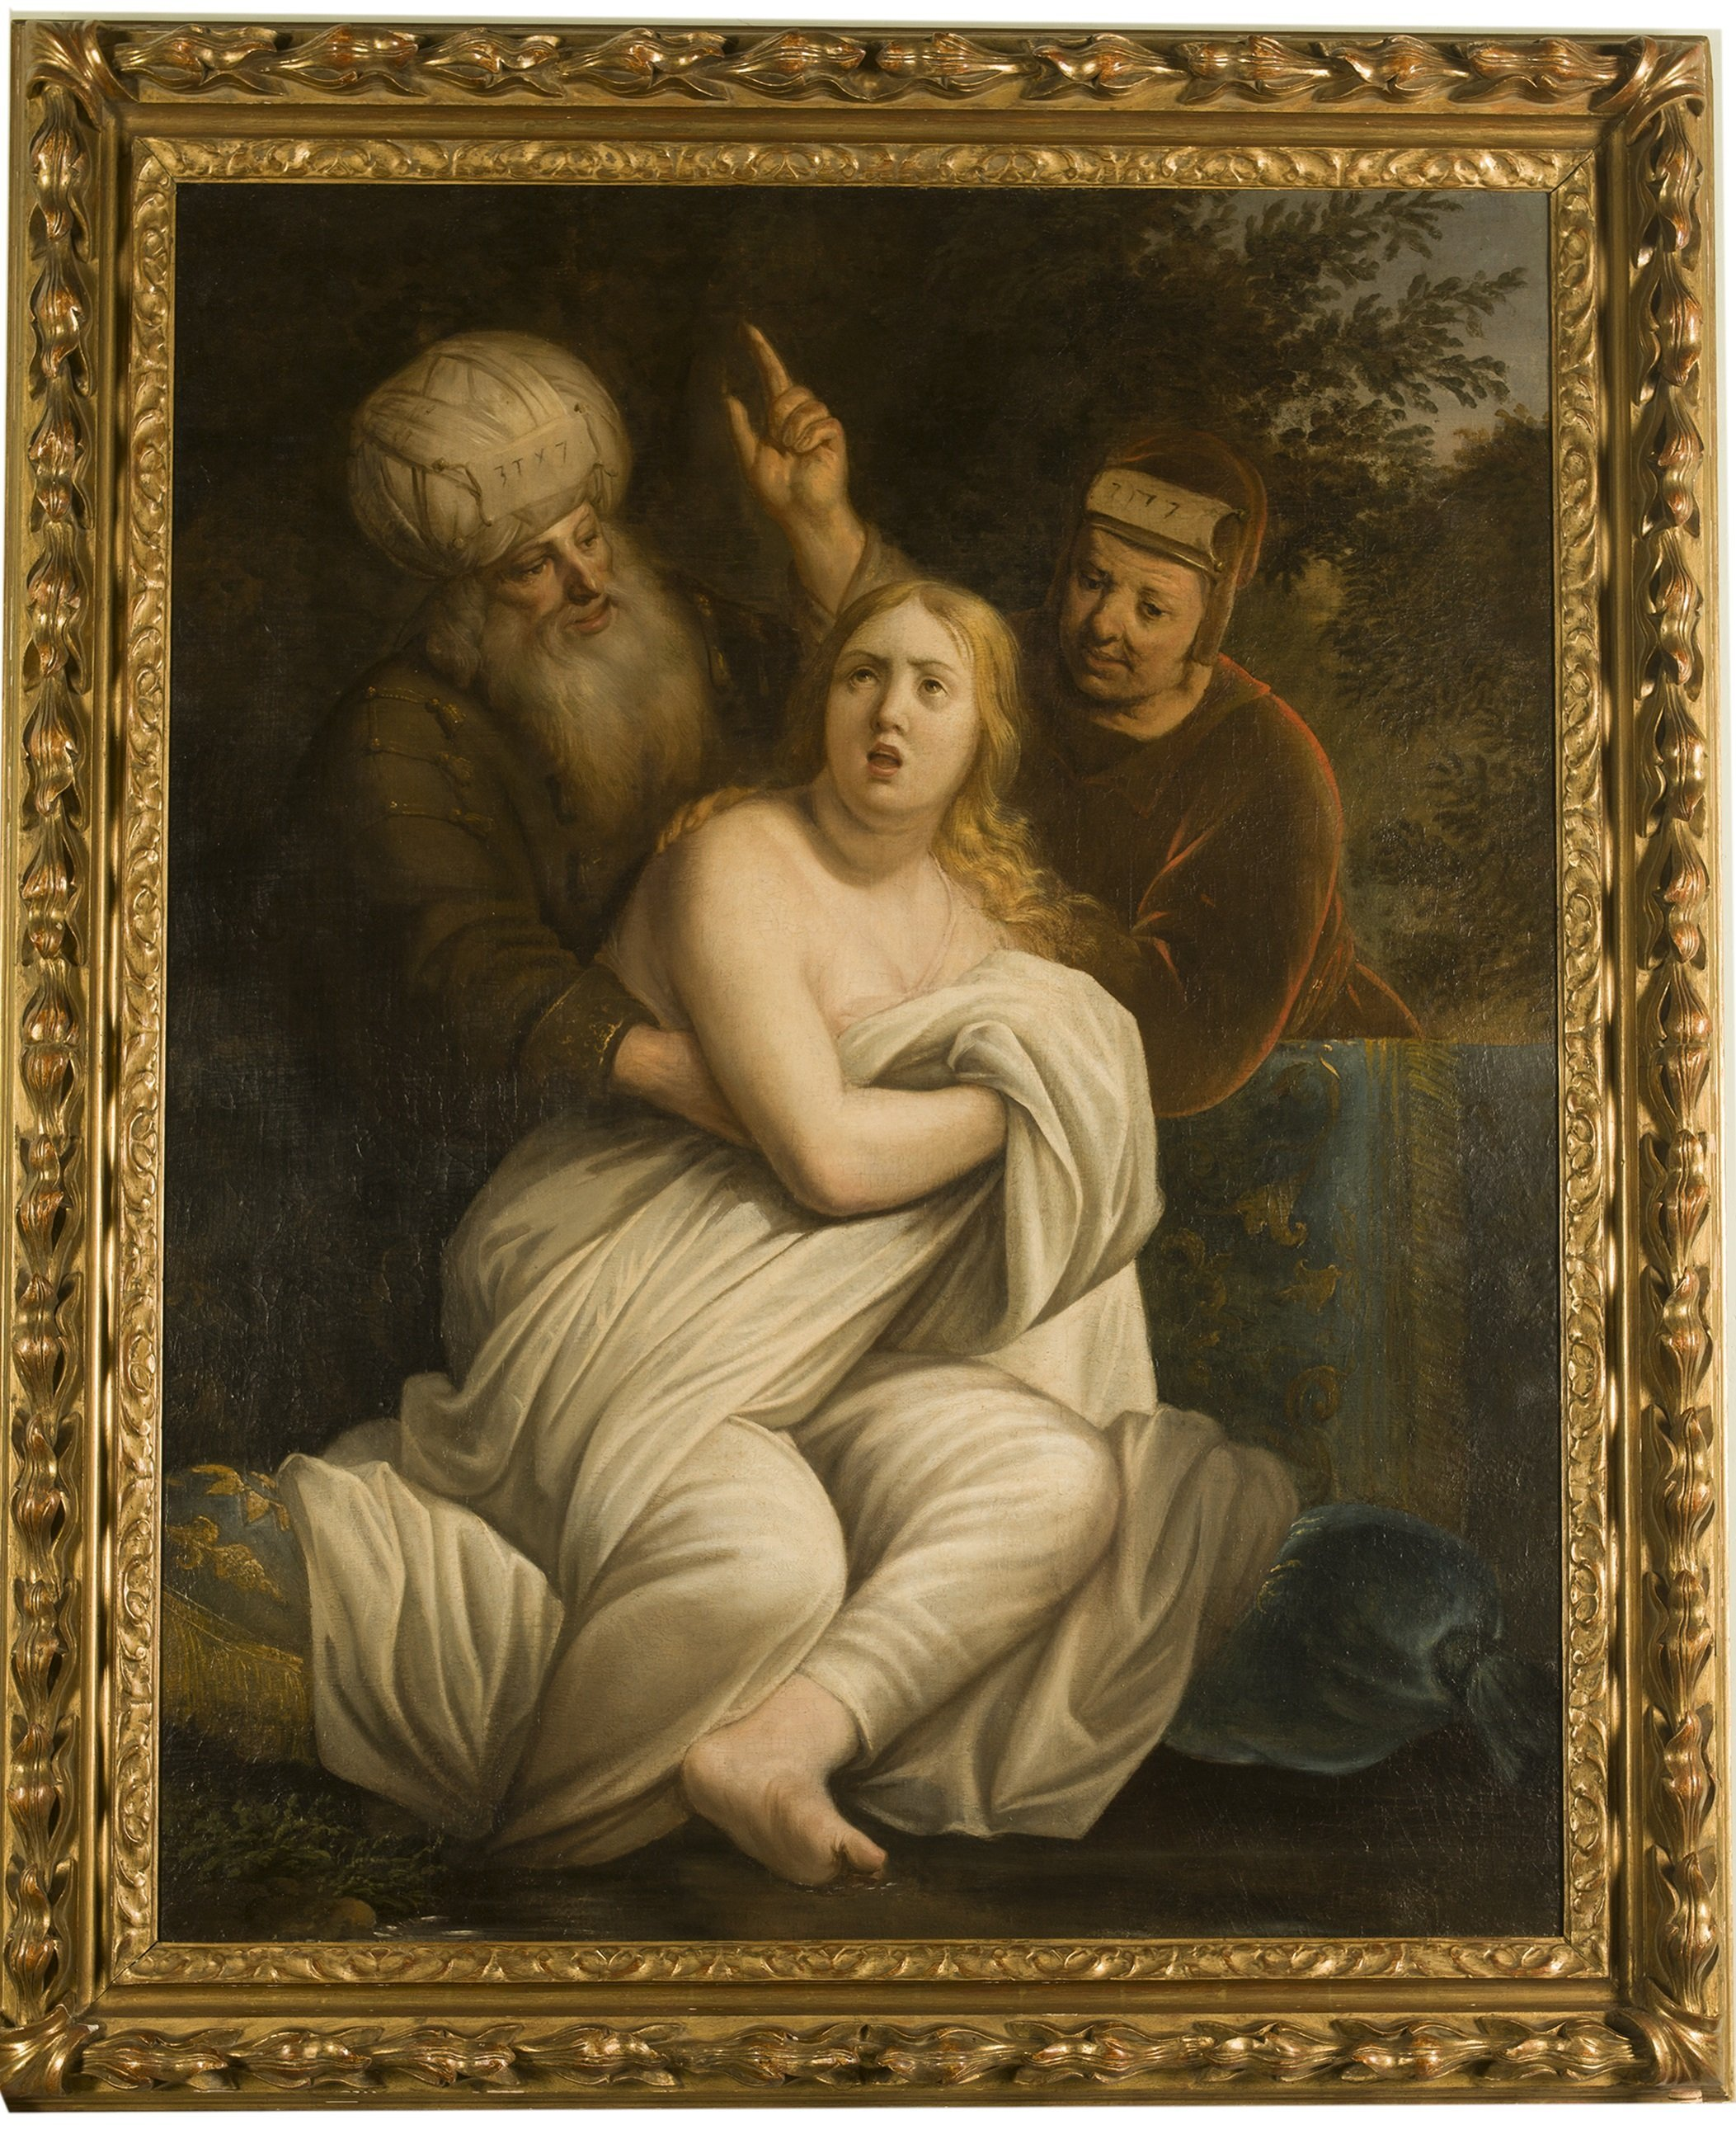 Susanna and the old men - oil on canvas - Contact for price